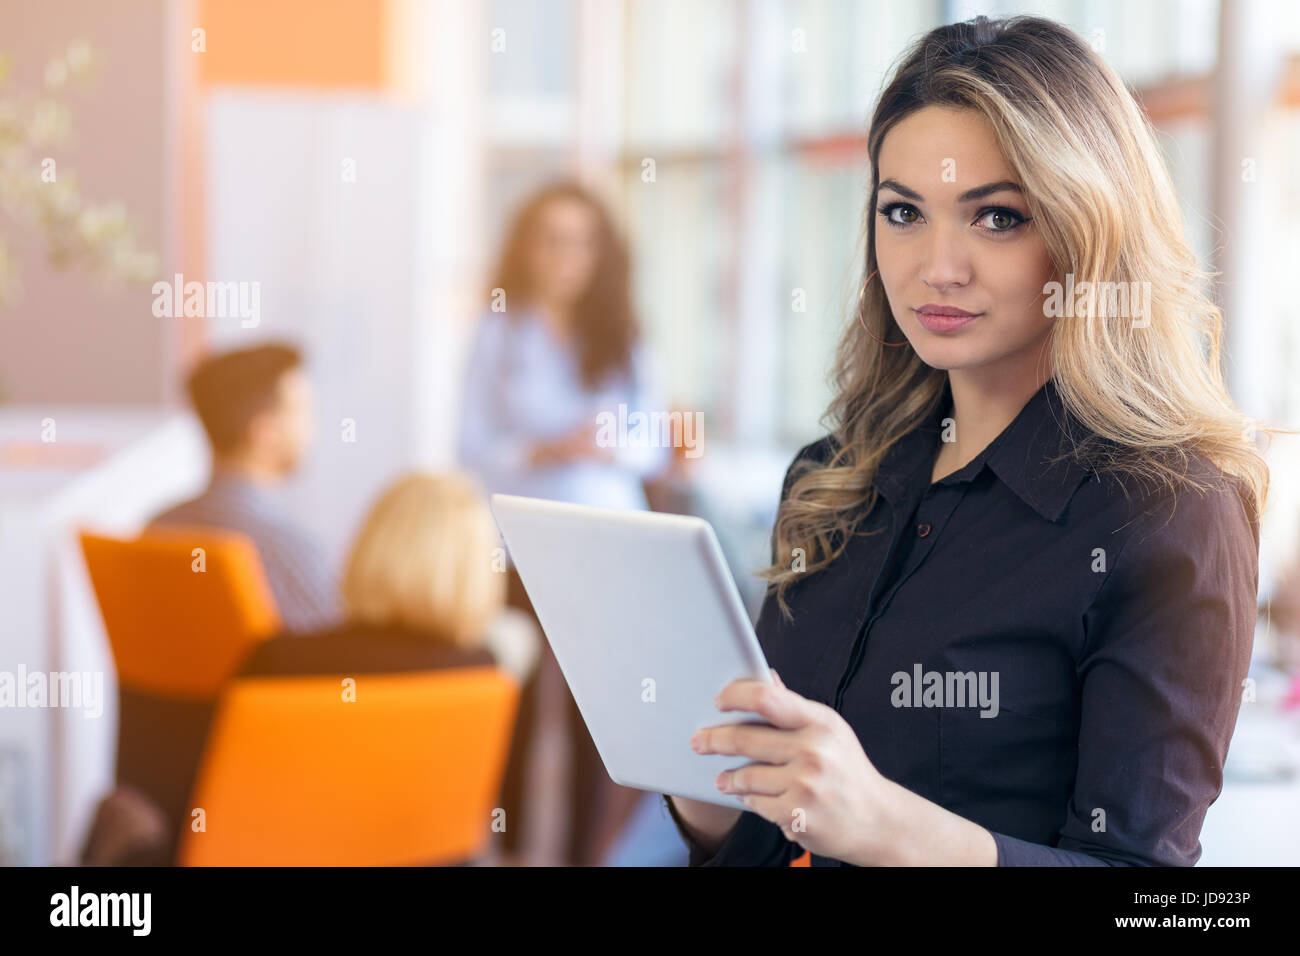 portrait of young business woman at modern startup office interior, team in meeting in background - Stock Image